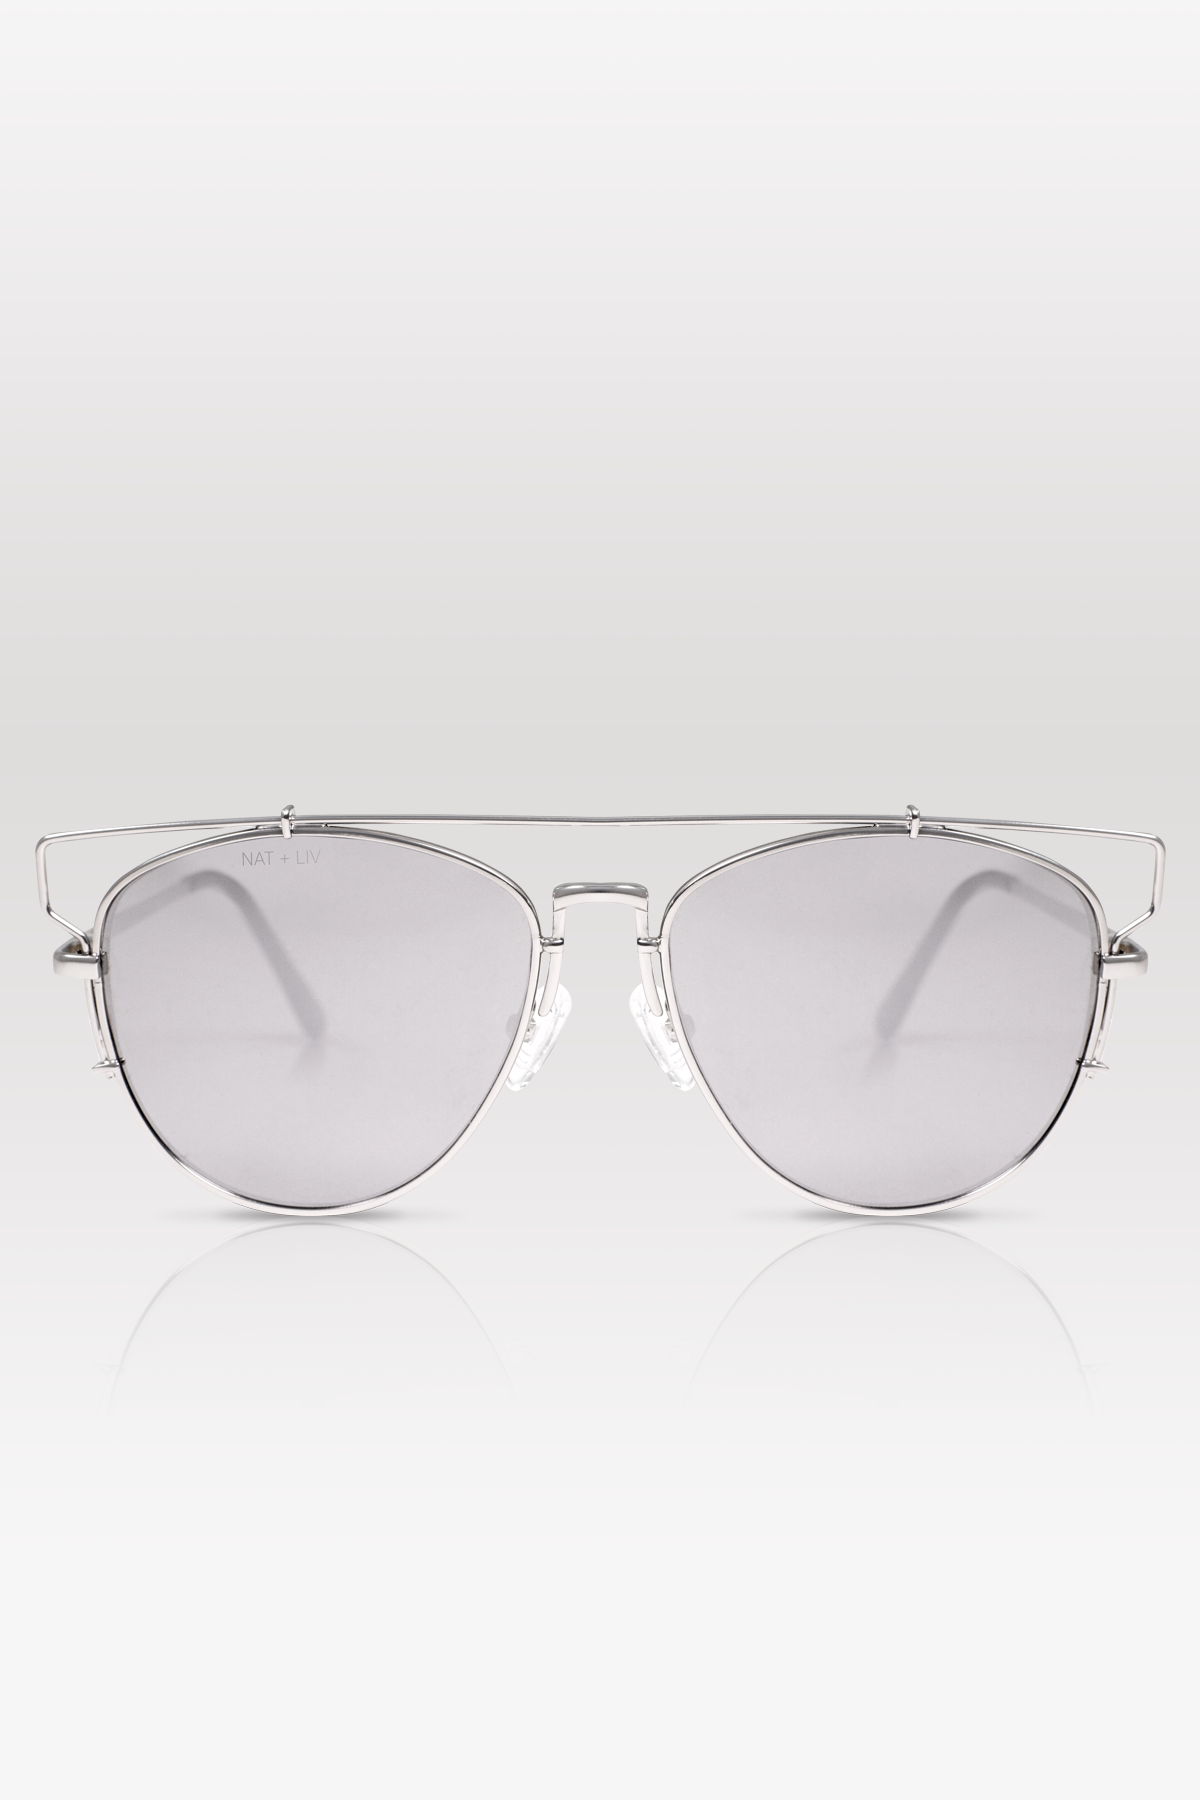 01-Platinum: Ultra-slim & shiny platinum metal, prominent brow bar, silver mirror lenses.